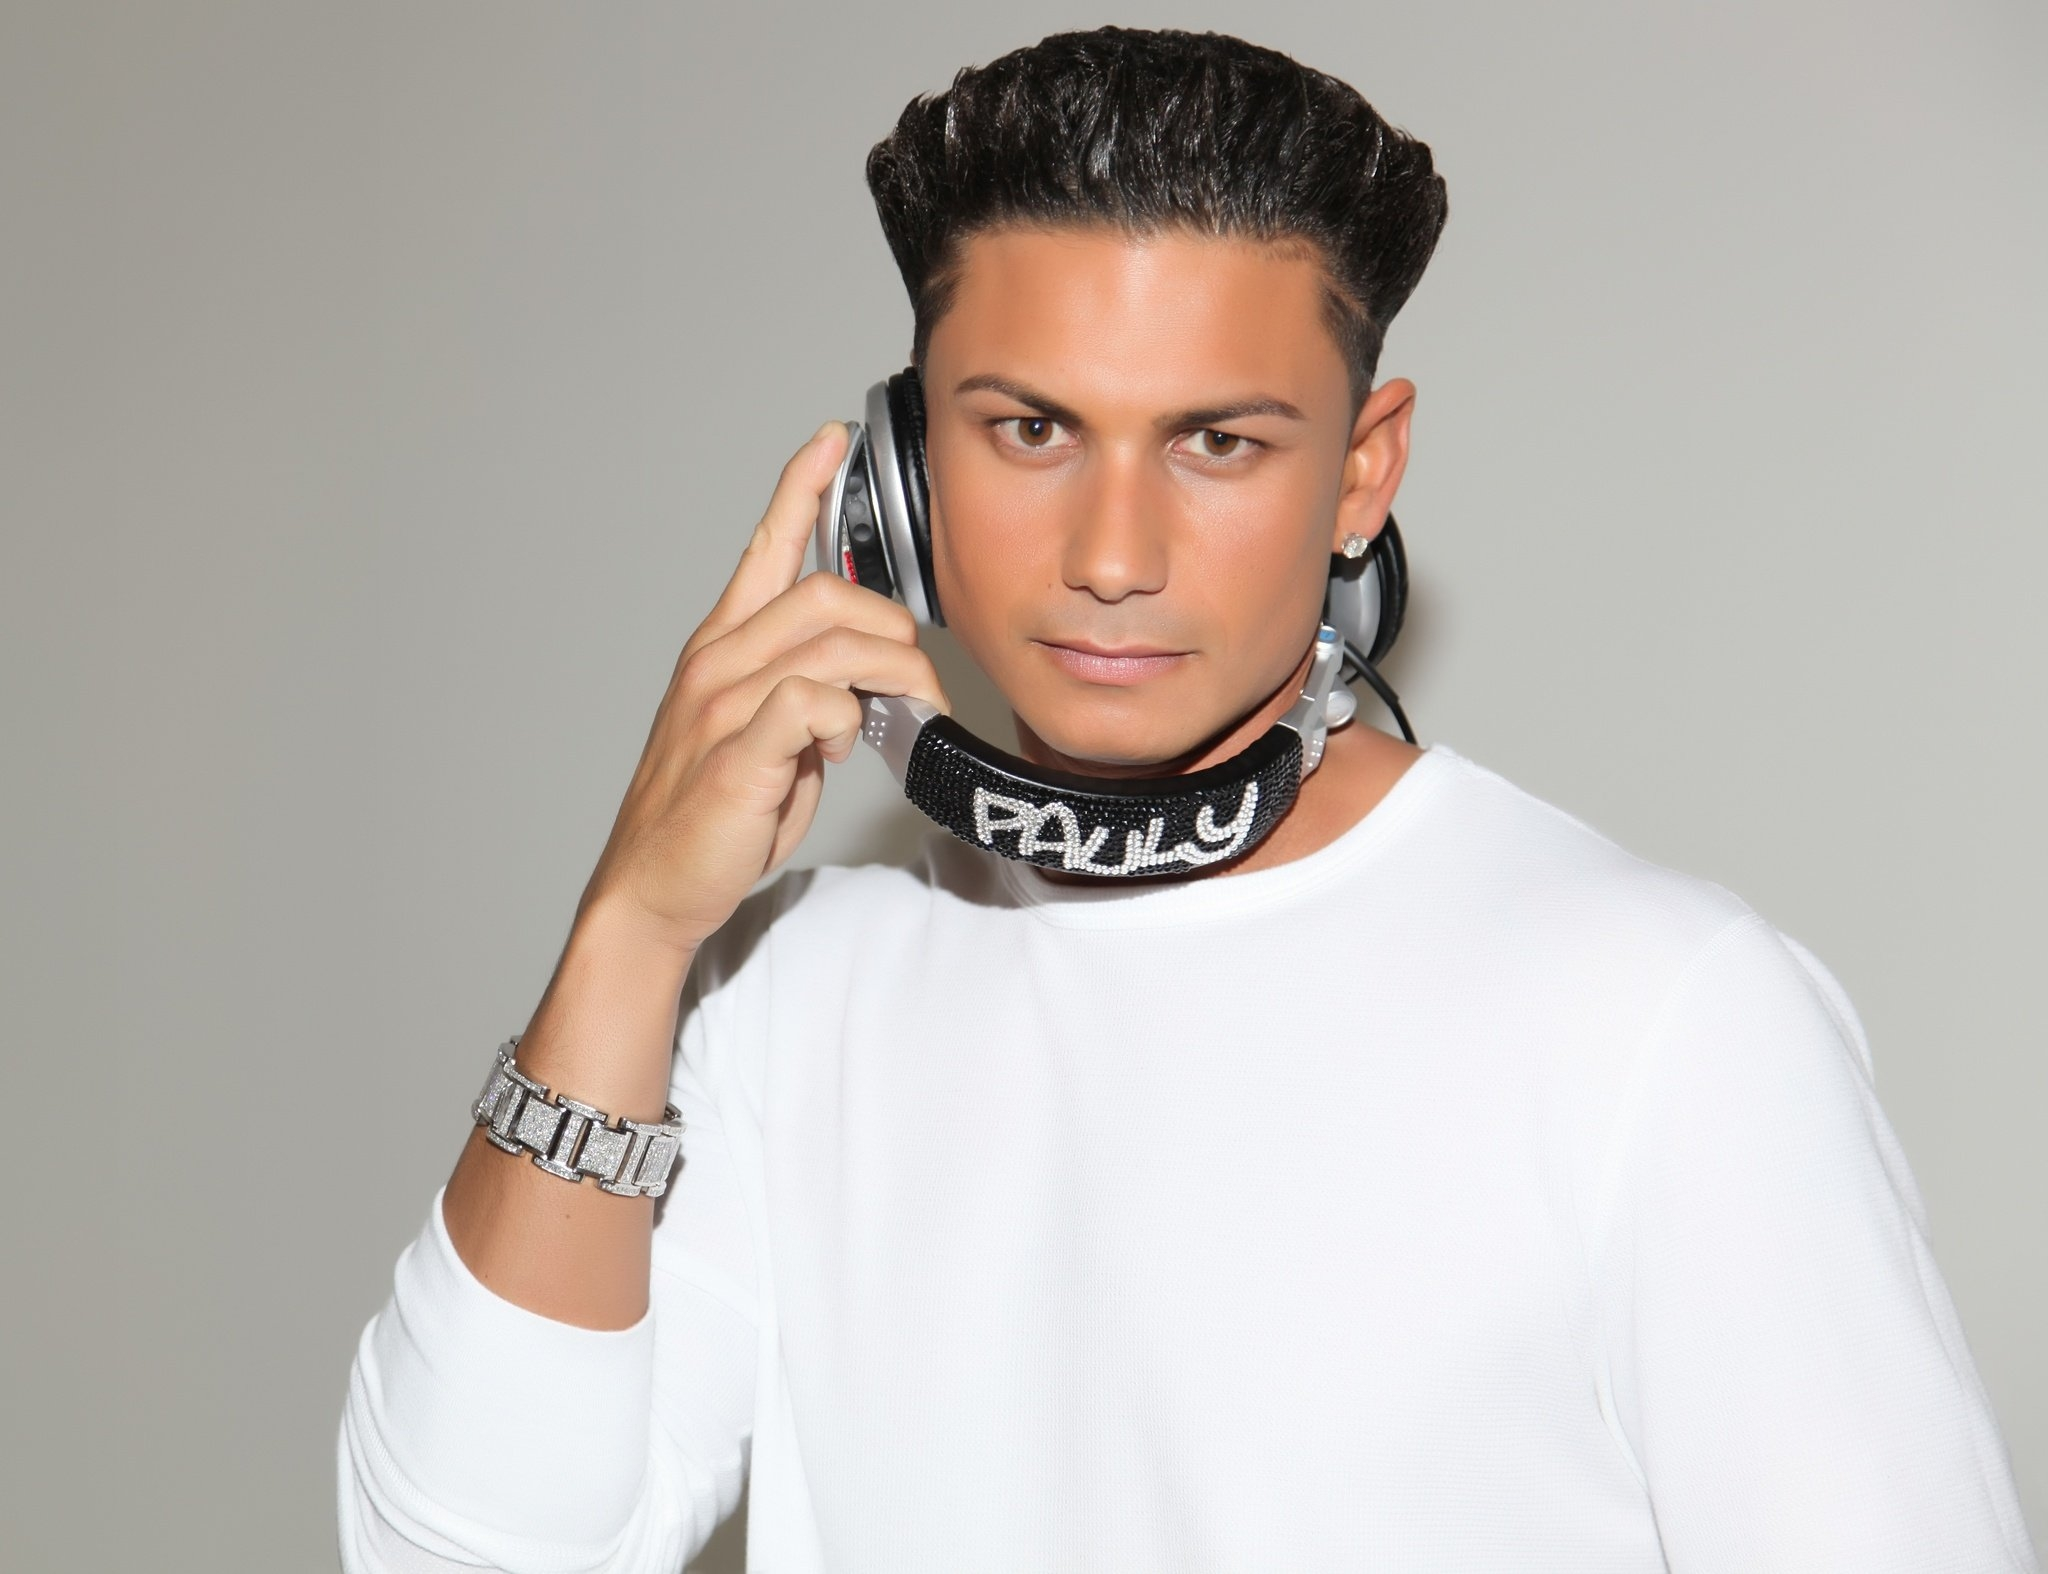 DJ Pauly D Net Worth